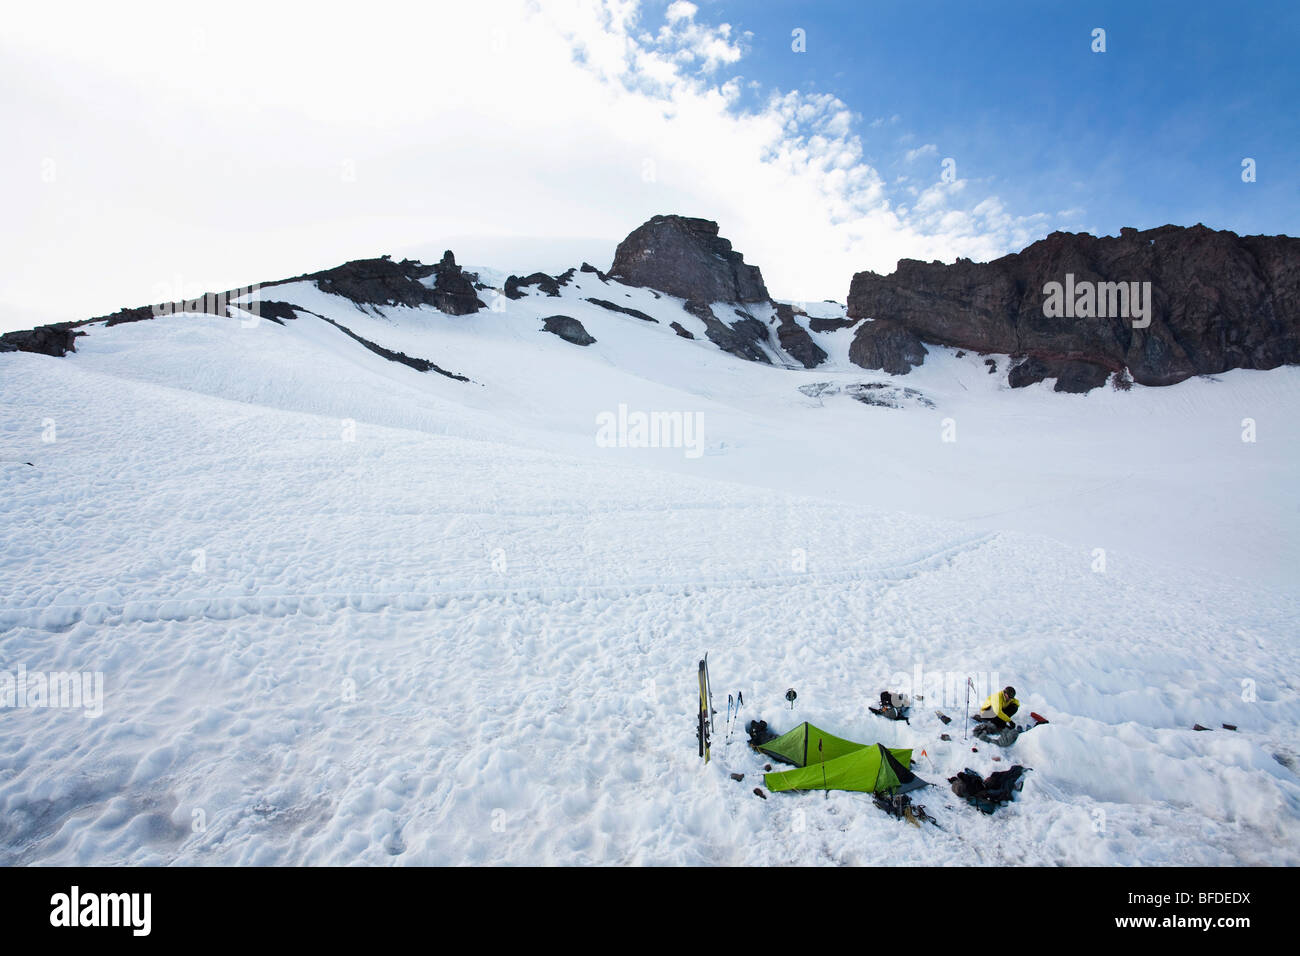 A climber melts snow near his campsite where two bivy sacks are set up. Stock Photo